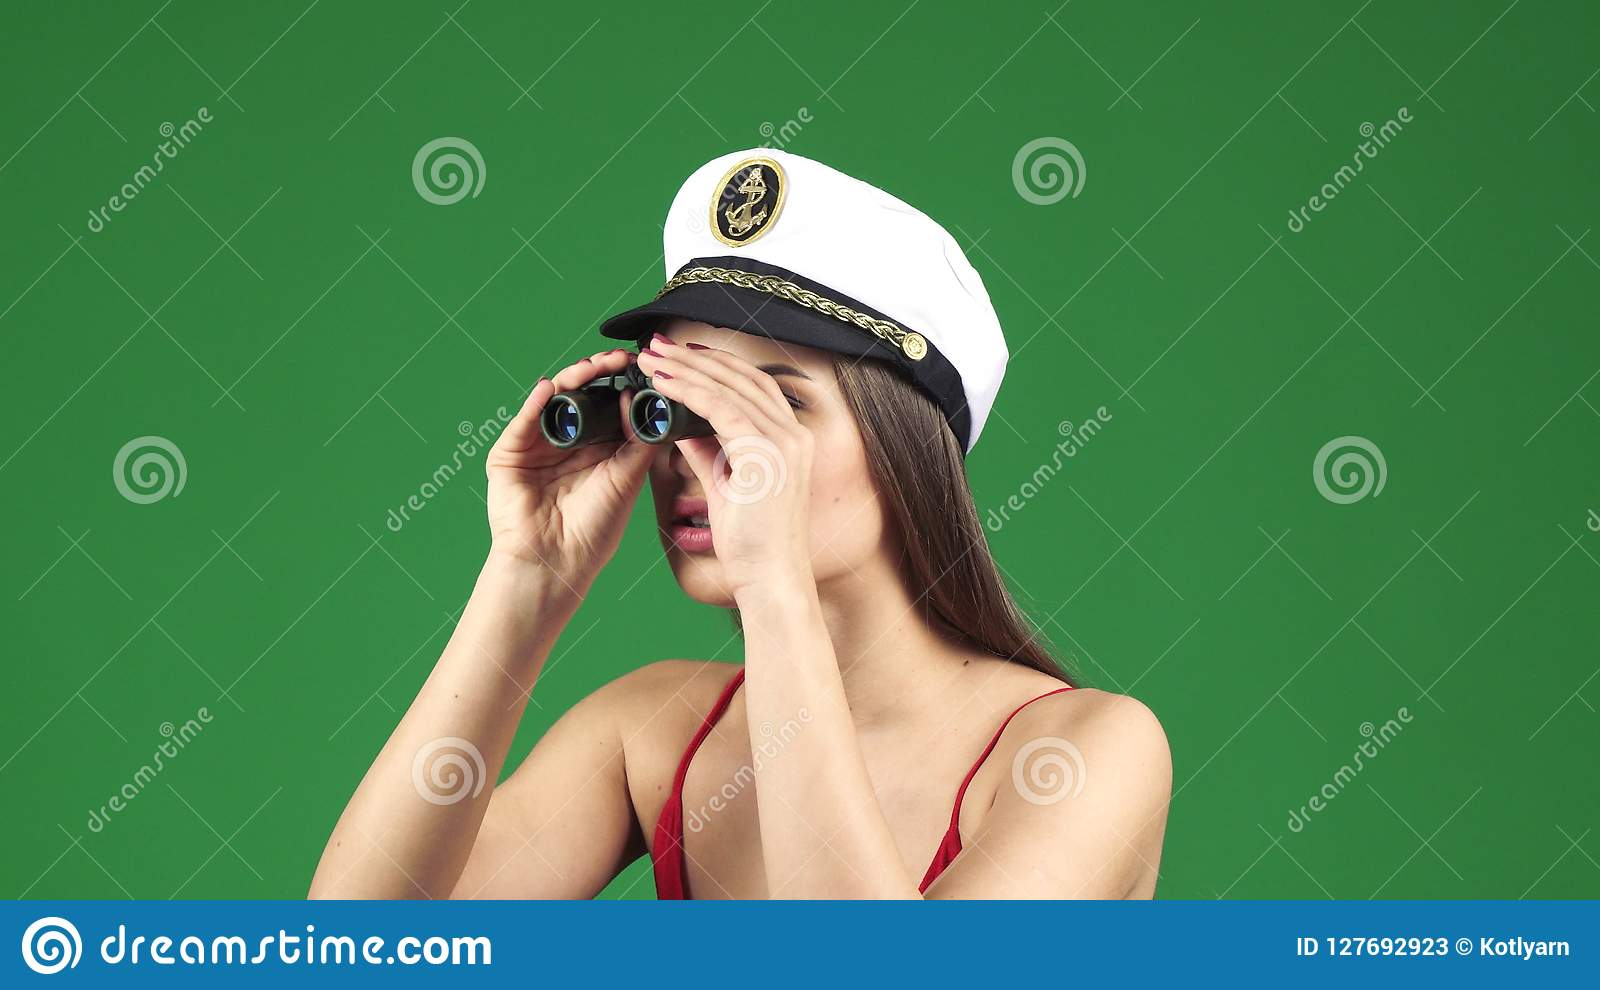 1b5a987e4b5 Close up of a happy young beautiful woman looking away using binoculars  wearing sailor cap smiling seductively to the camera on green chromakey  background ...